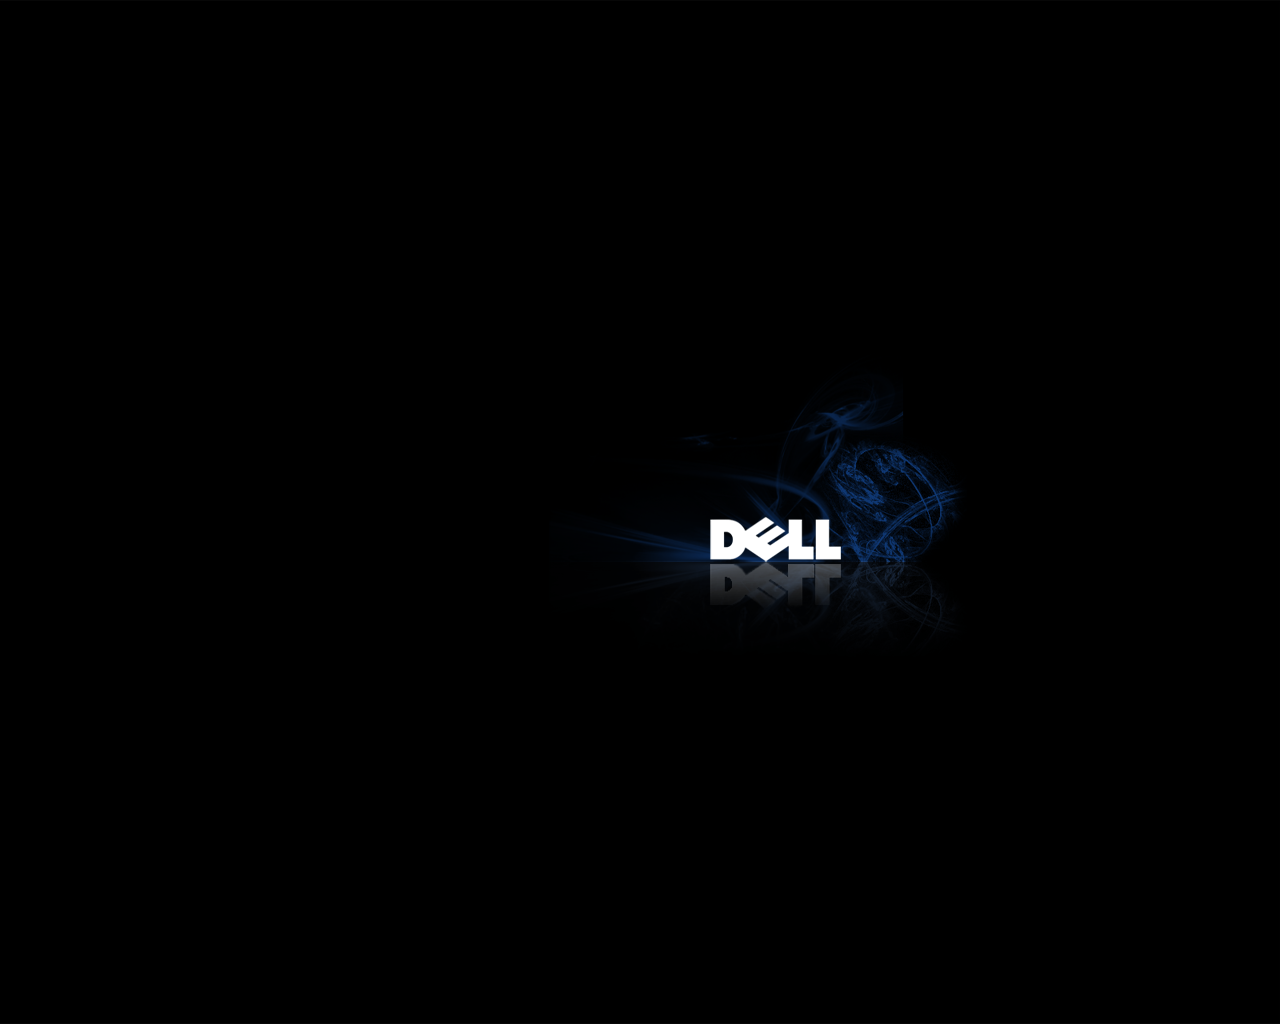 HD Wallpapers For Dell Laptop Download Wallpaper DaWallpaperz 1280x1024